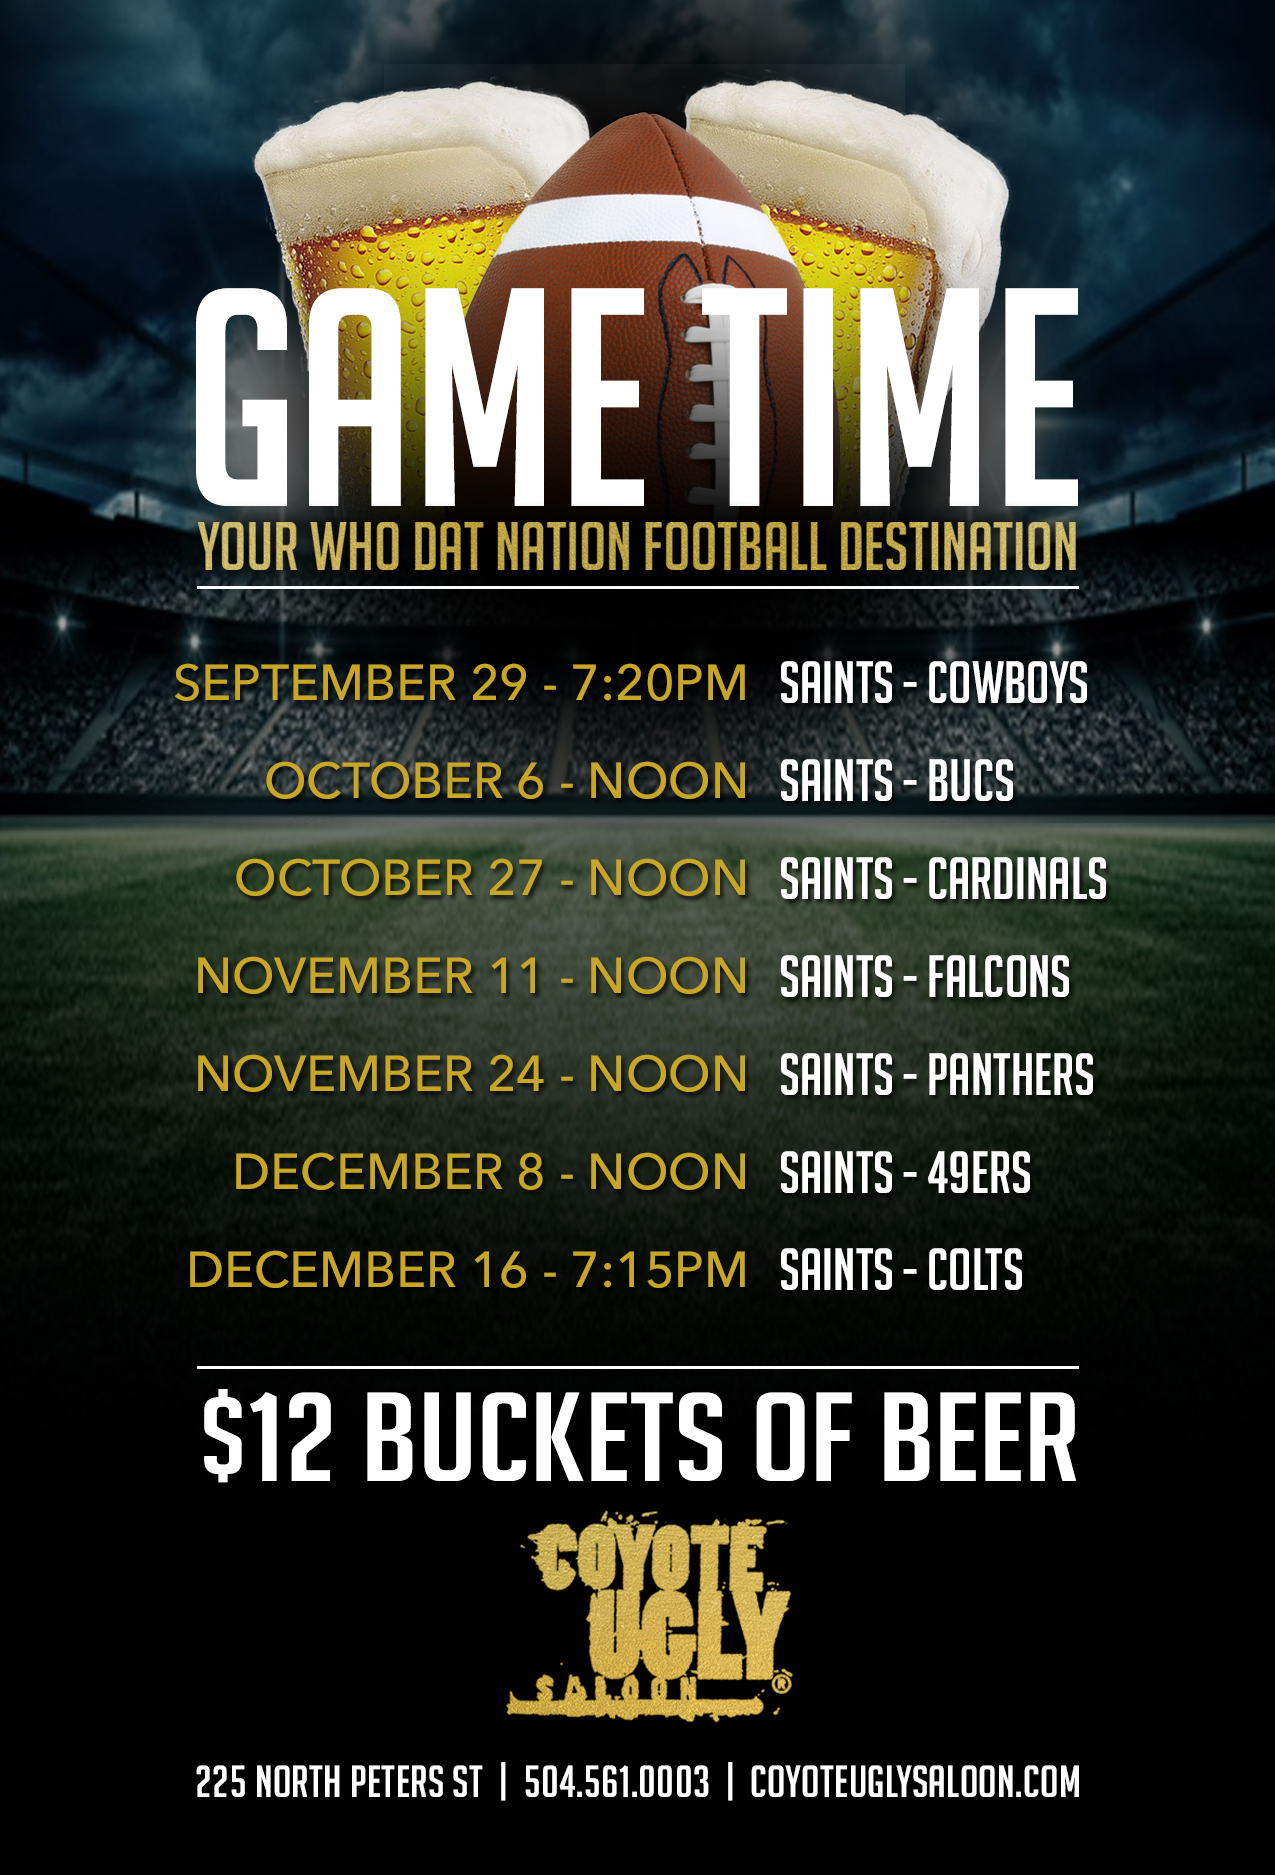 Saints vs. Cardinals in New Orleans on October 27, 2019